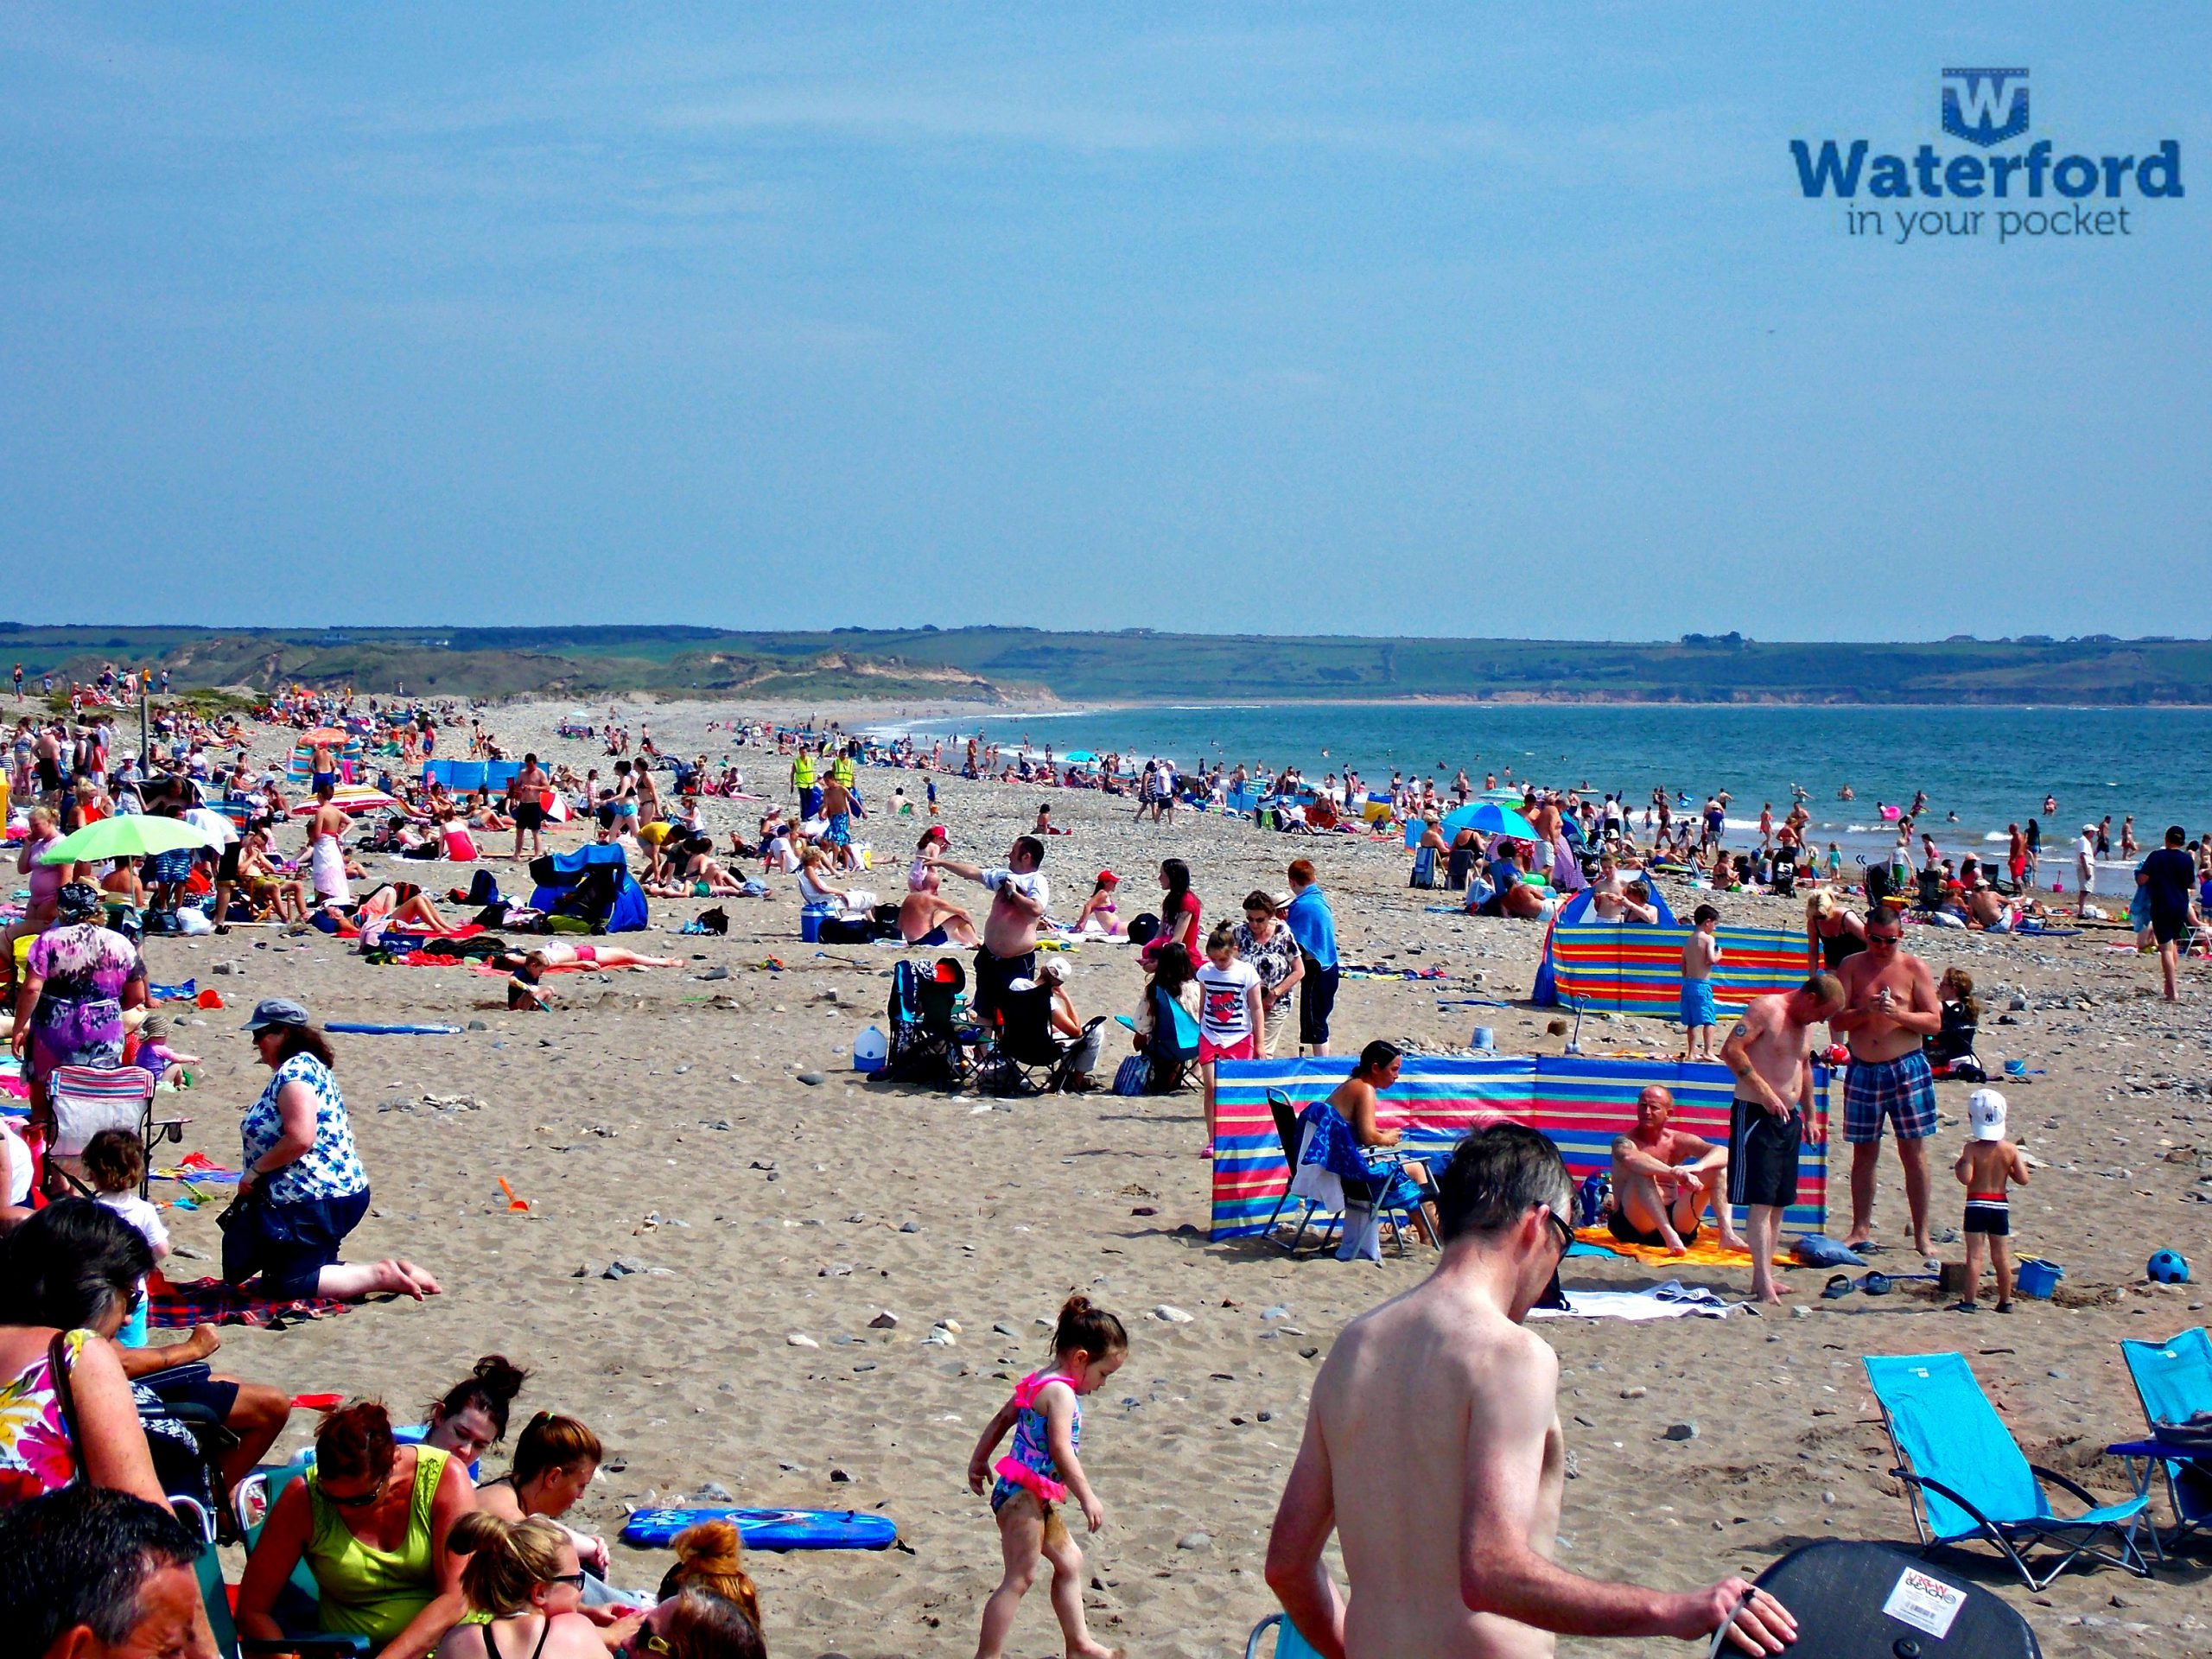 10 Reasons Not to Visit Waterford